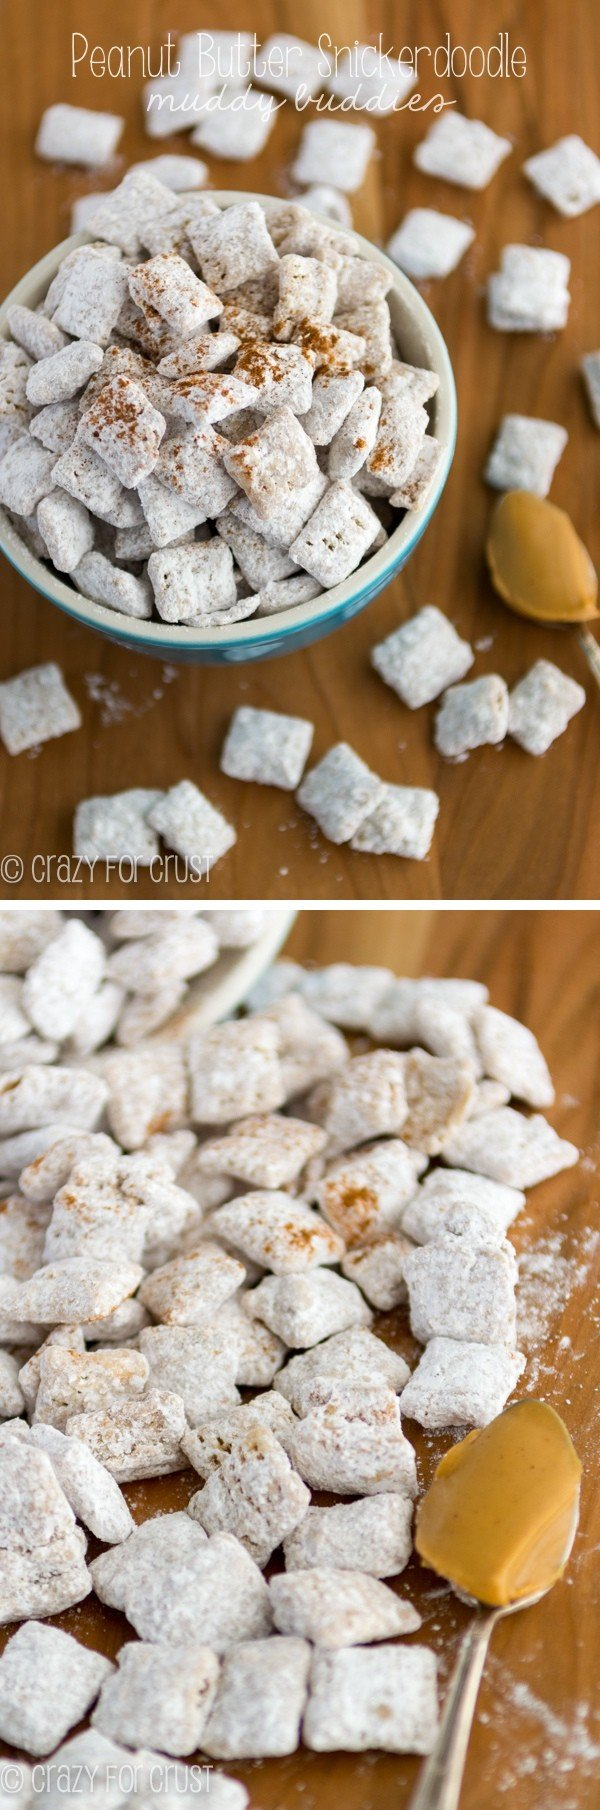 Peanut Butter Snickerdoodle Muddy Buddies - peanut butter and cinnamon make the perfect snack!